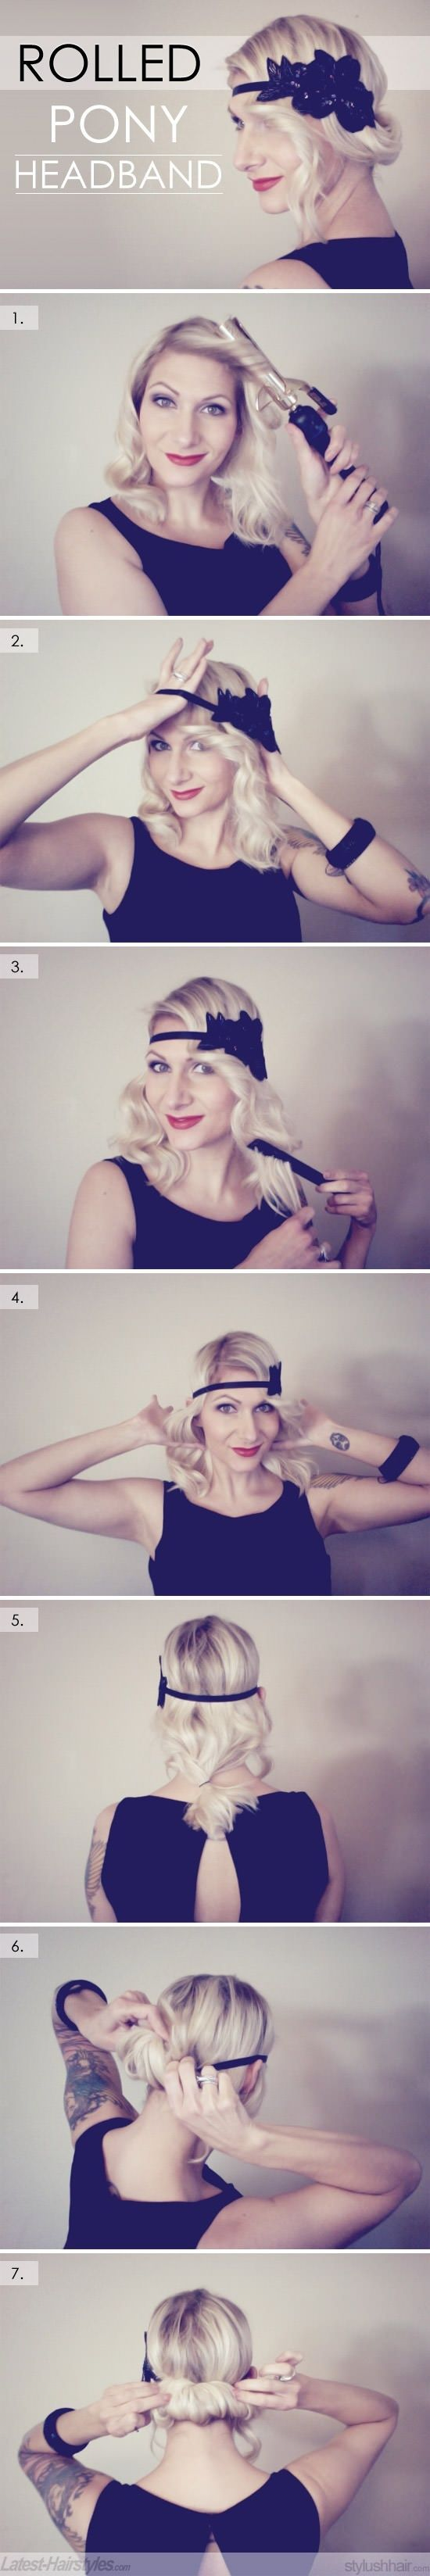 DIY Rolled Ponytail Headband - Flapper style routine